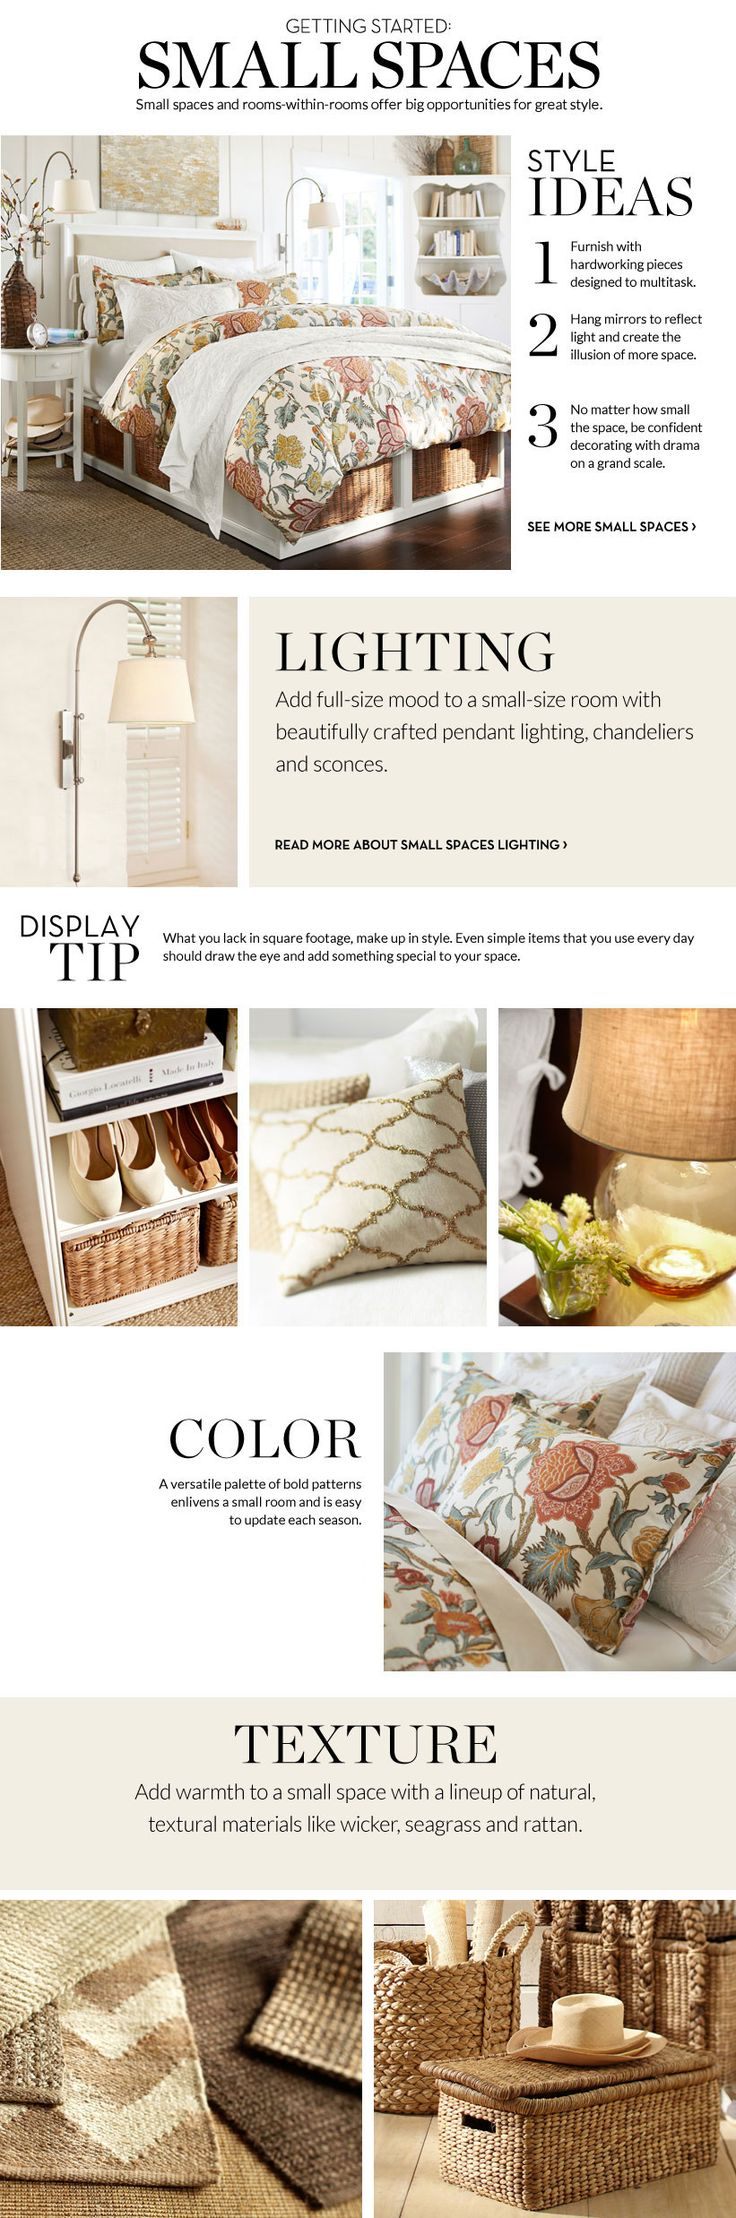 small spaces pottery barn apartments smallspaces stlouis www